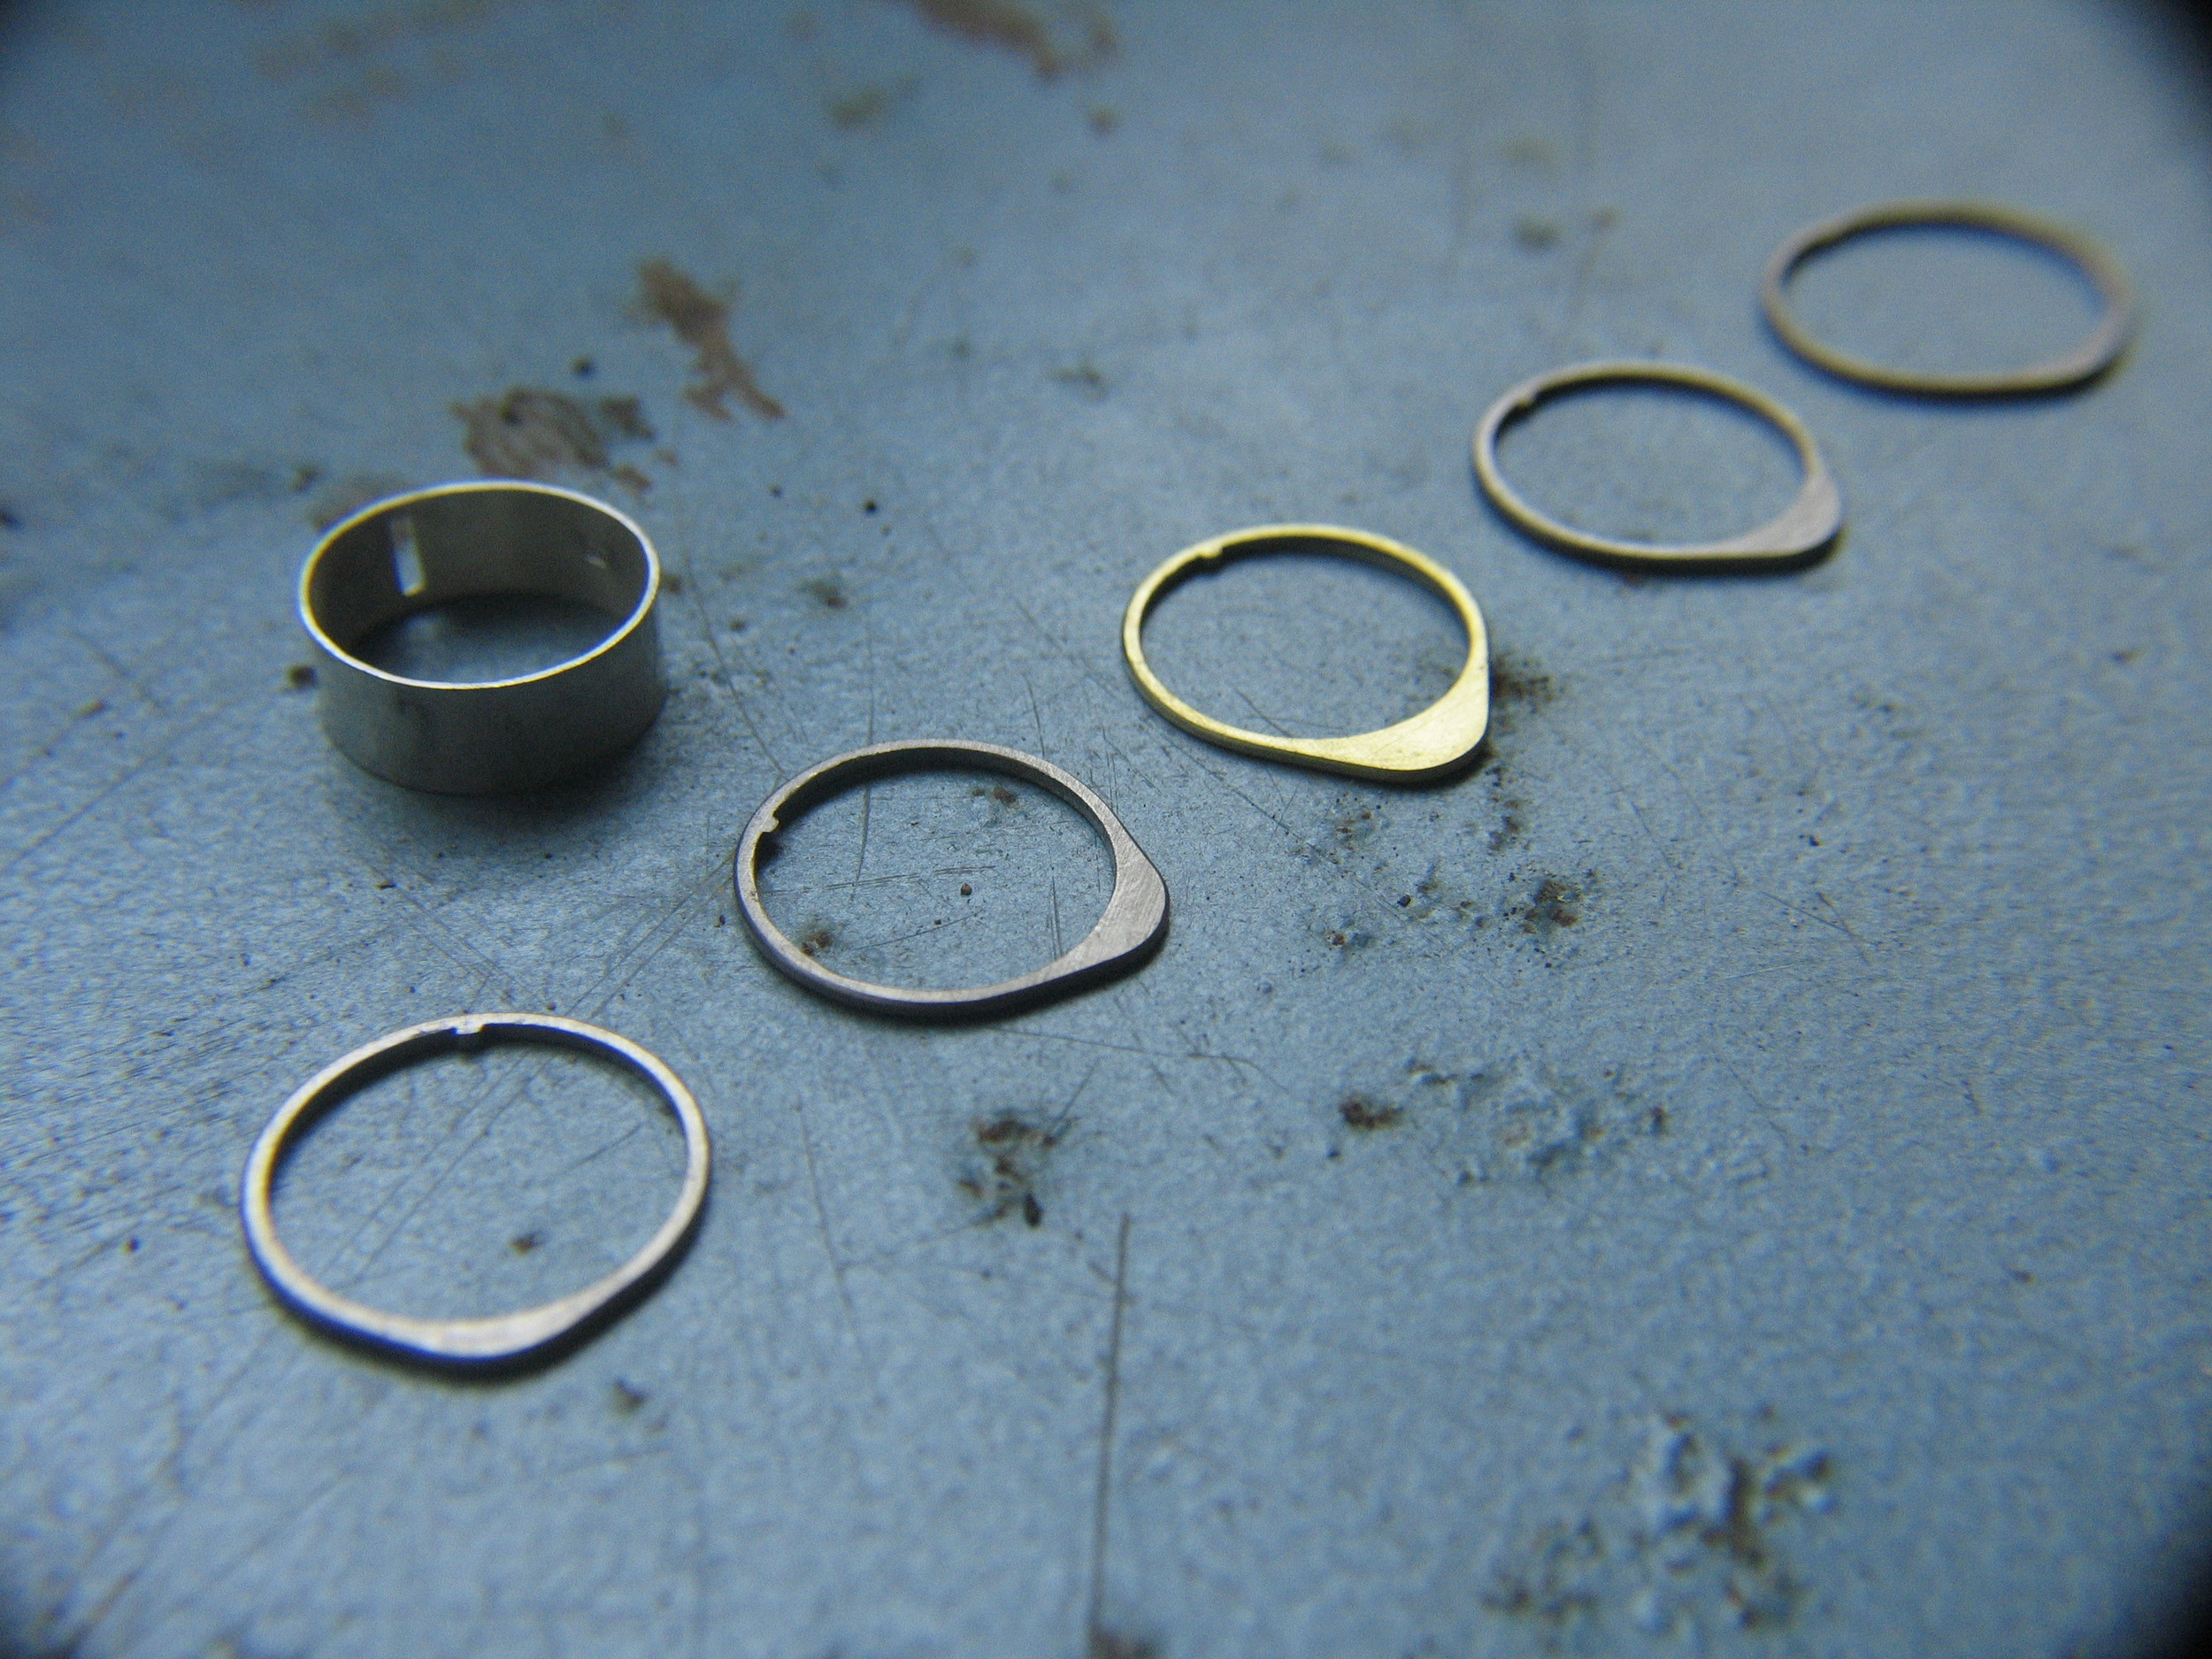 GOLD TITANIUM AND SILVER COMPONENTS